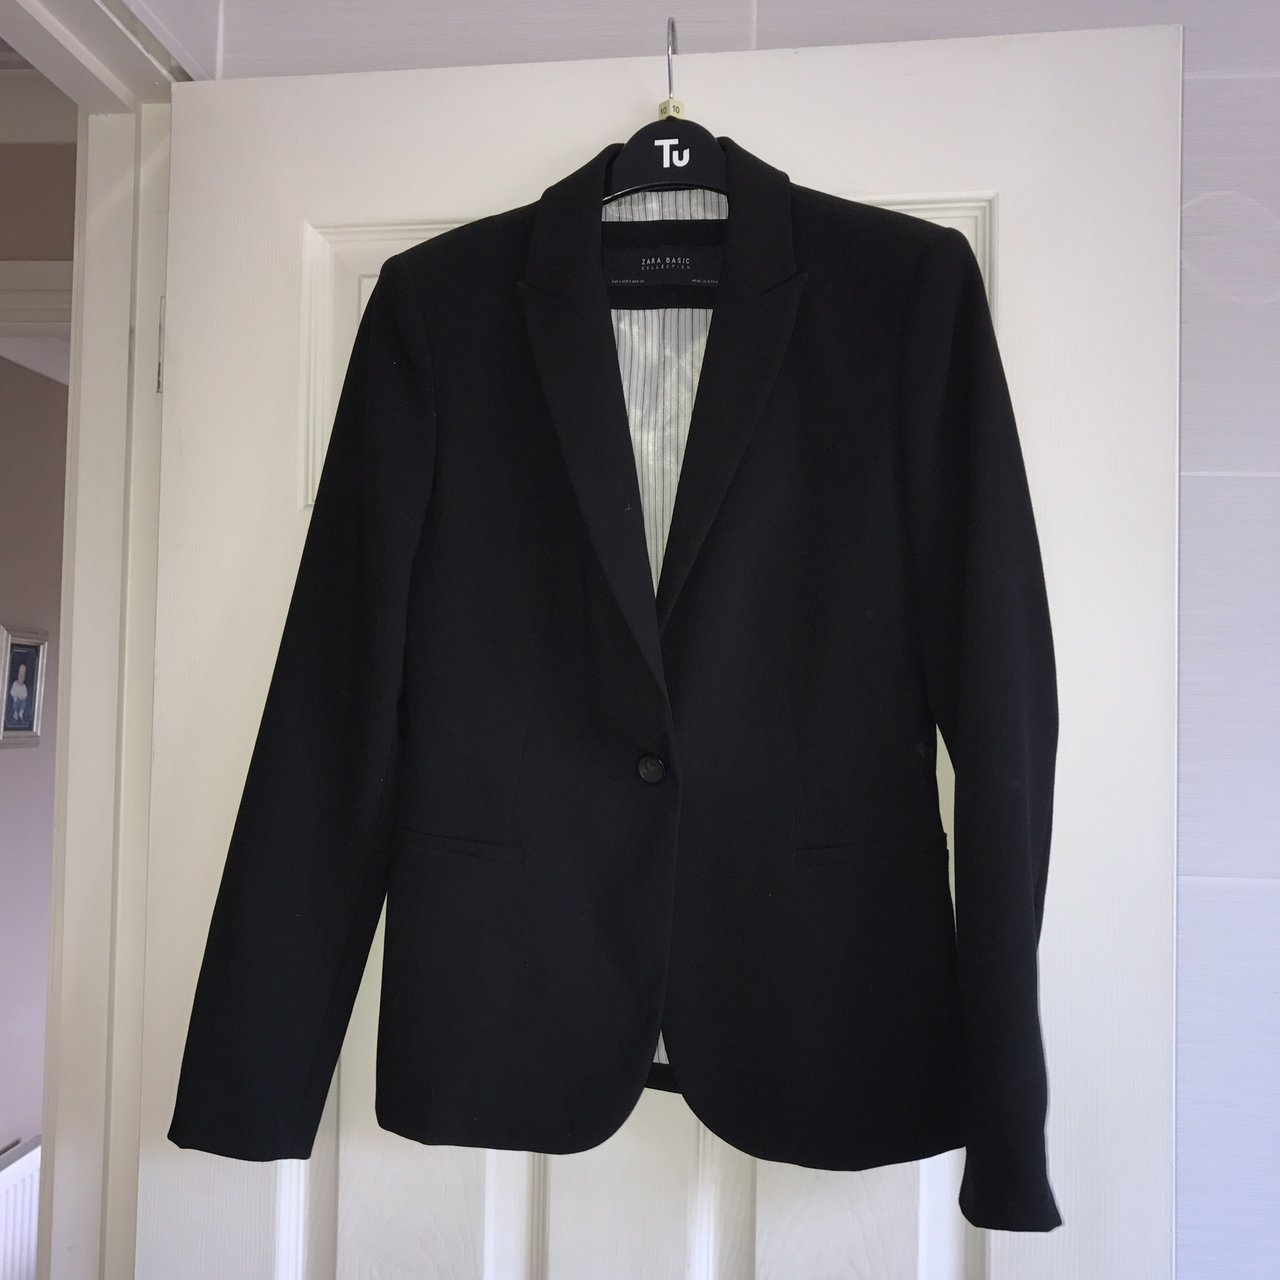 b2b2b65e5ccb @chelseyscott. last year. Wishaw, United Kingdom. Zara black female suit  jacket / blazer. Brand new never worn